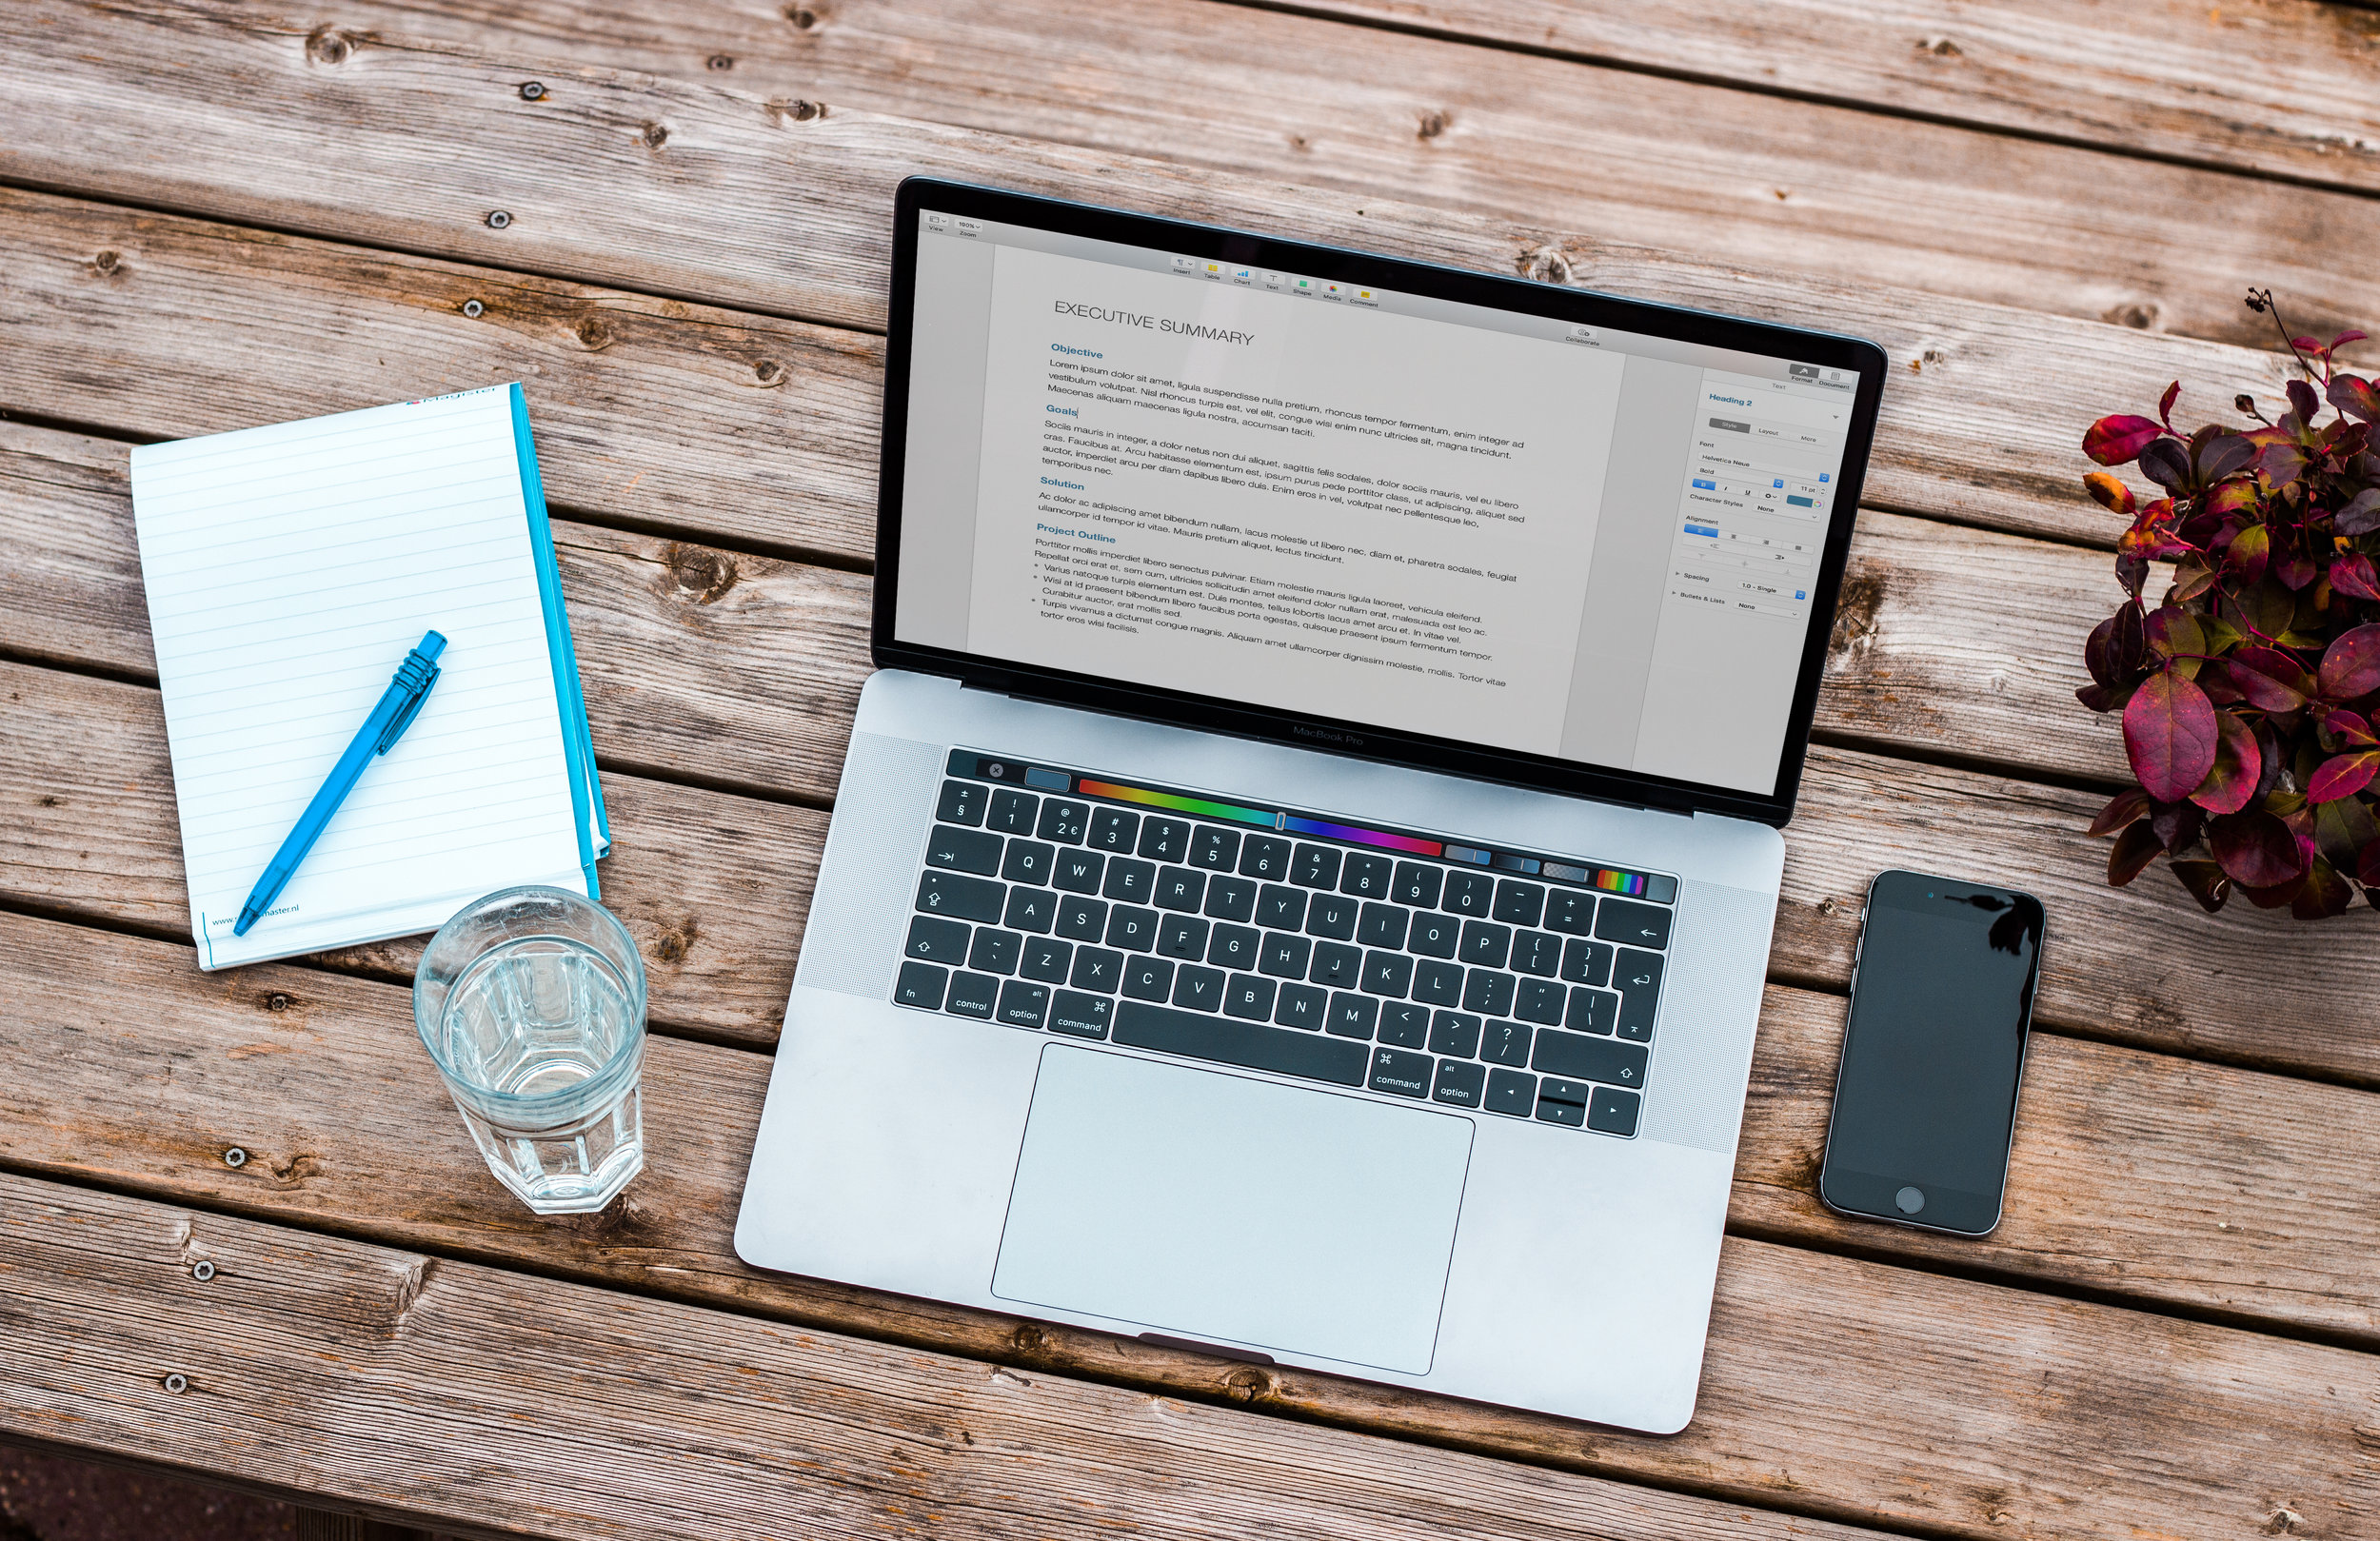 ✓  Full edit and optimization of your resume OR cover letter   ✓  resume   page max (3 pages)   ✓  1 revision   ✓  3 day delivery    ________________________________________________    Add ons:    + 1 revision $30.00    + Expedite (1 day delivery) $50.00    Let's Chat!